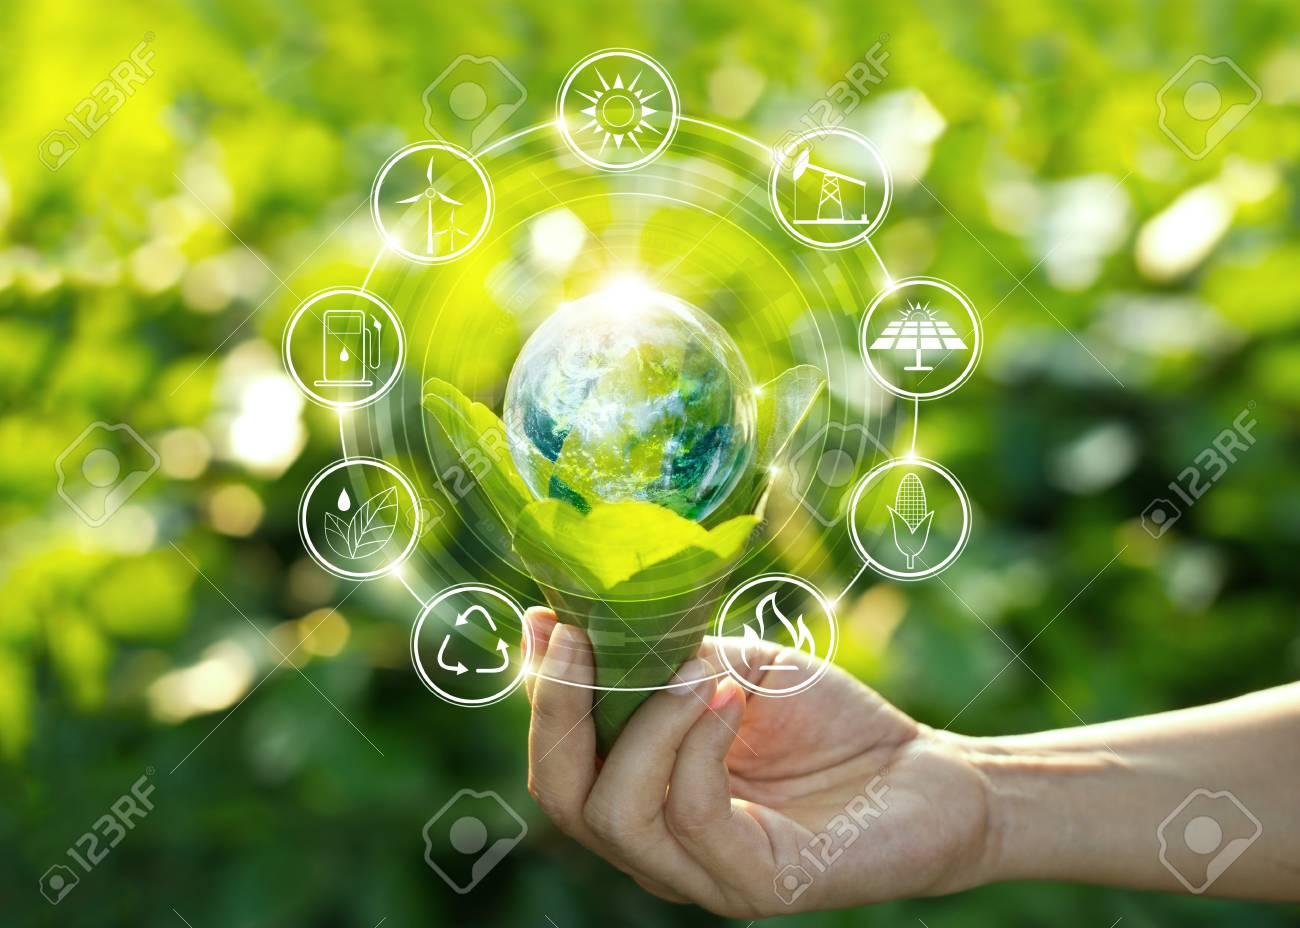 Hand holding light bulb against nature on green leaf with icons energy sources for renewable, sustainable development. Ecology concept. Elements of this image furnished by NASA. - 106927248